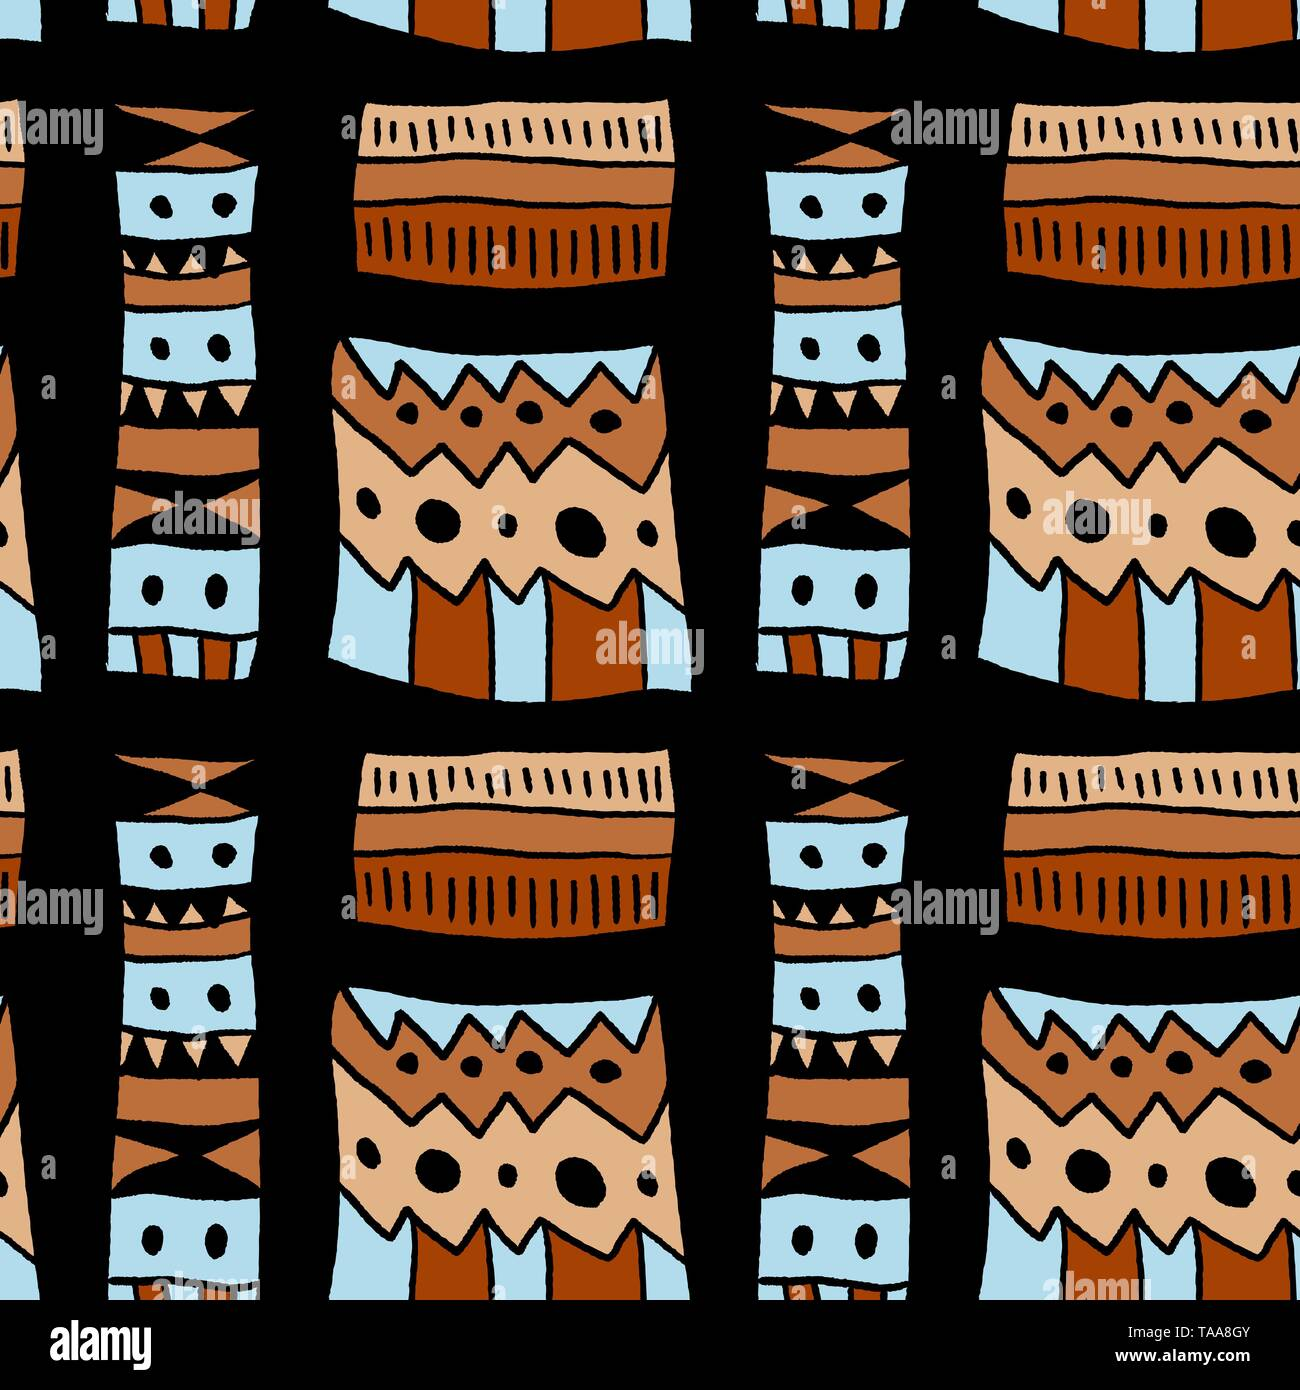 Africa tribal pattern - artistic fabric material texture. Seamless background. - Stock Image